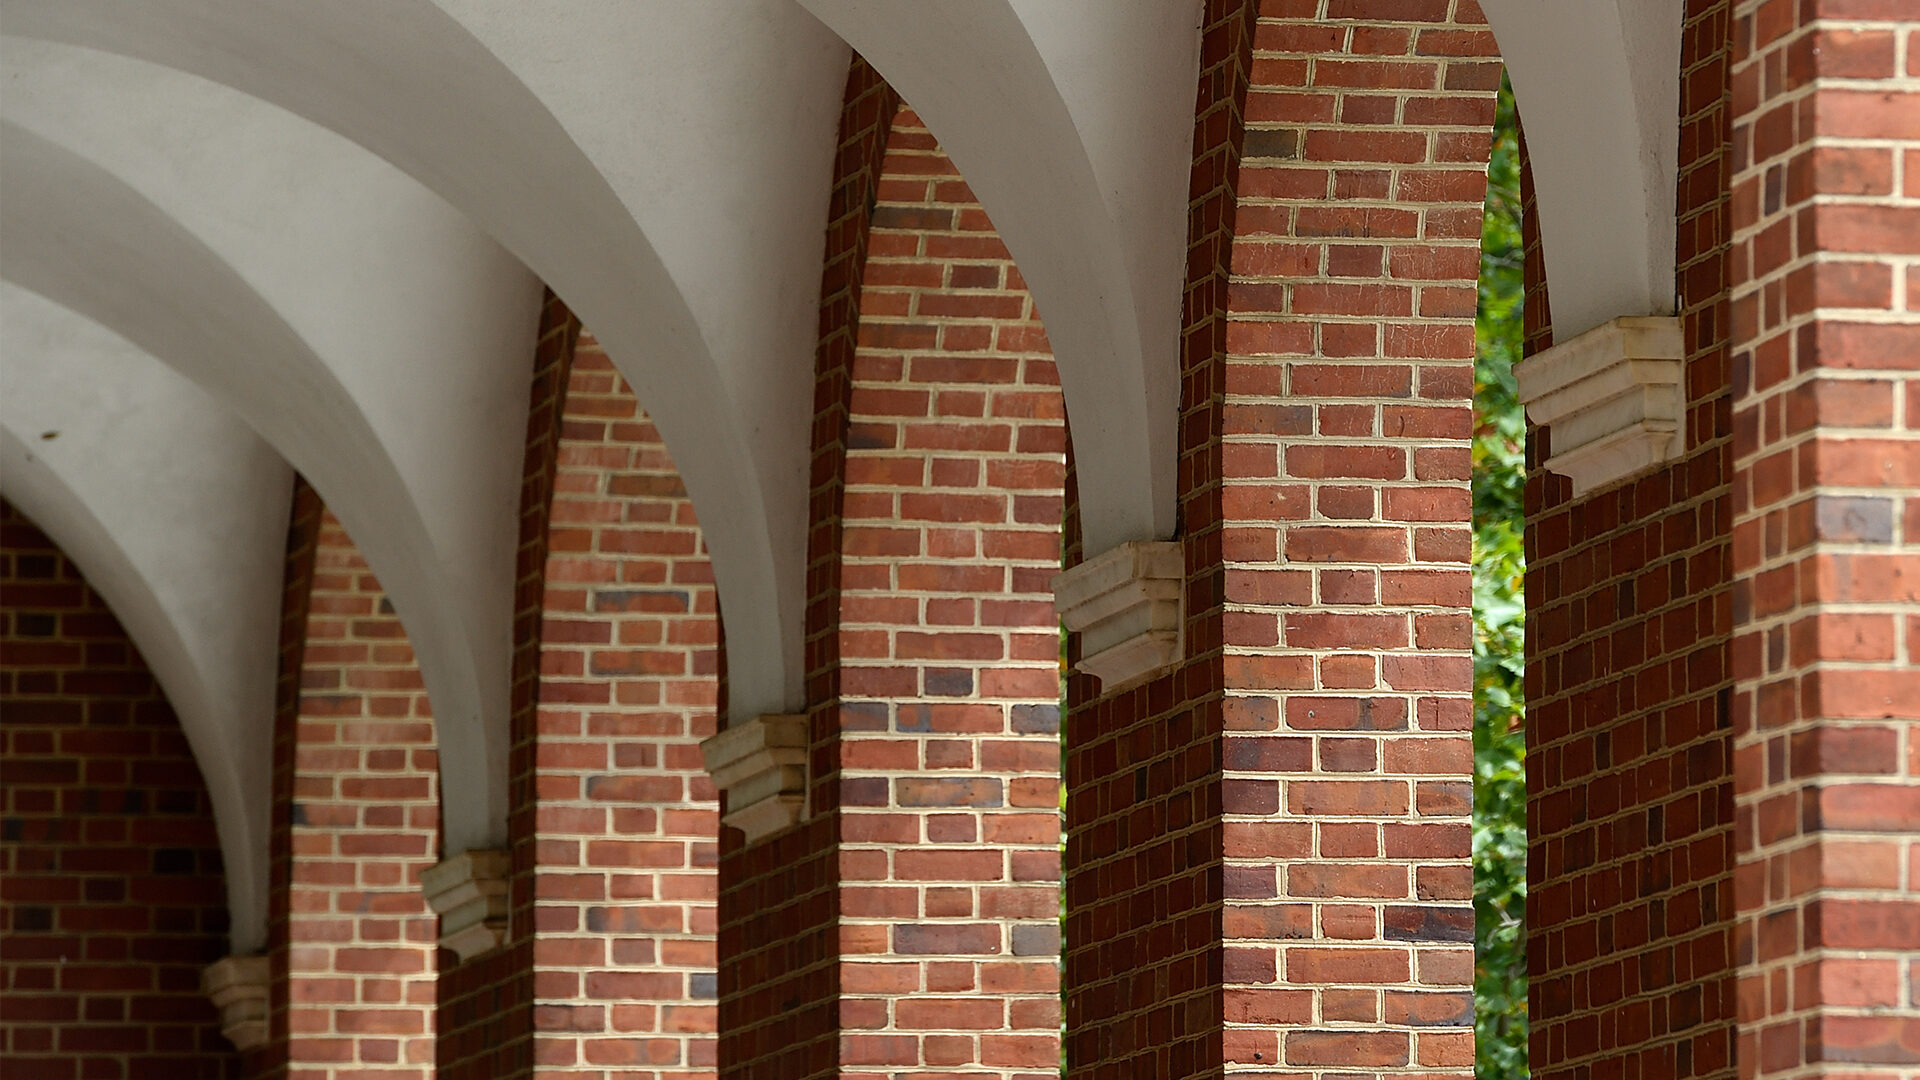 A shot on campus shows bring pillars and white arches.